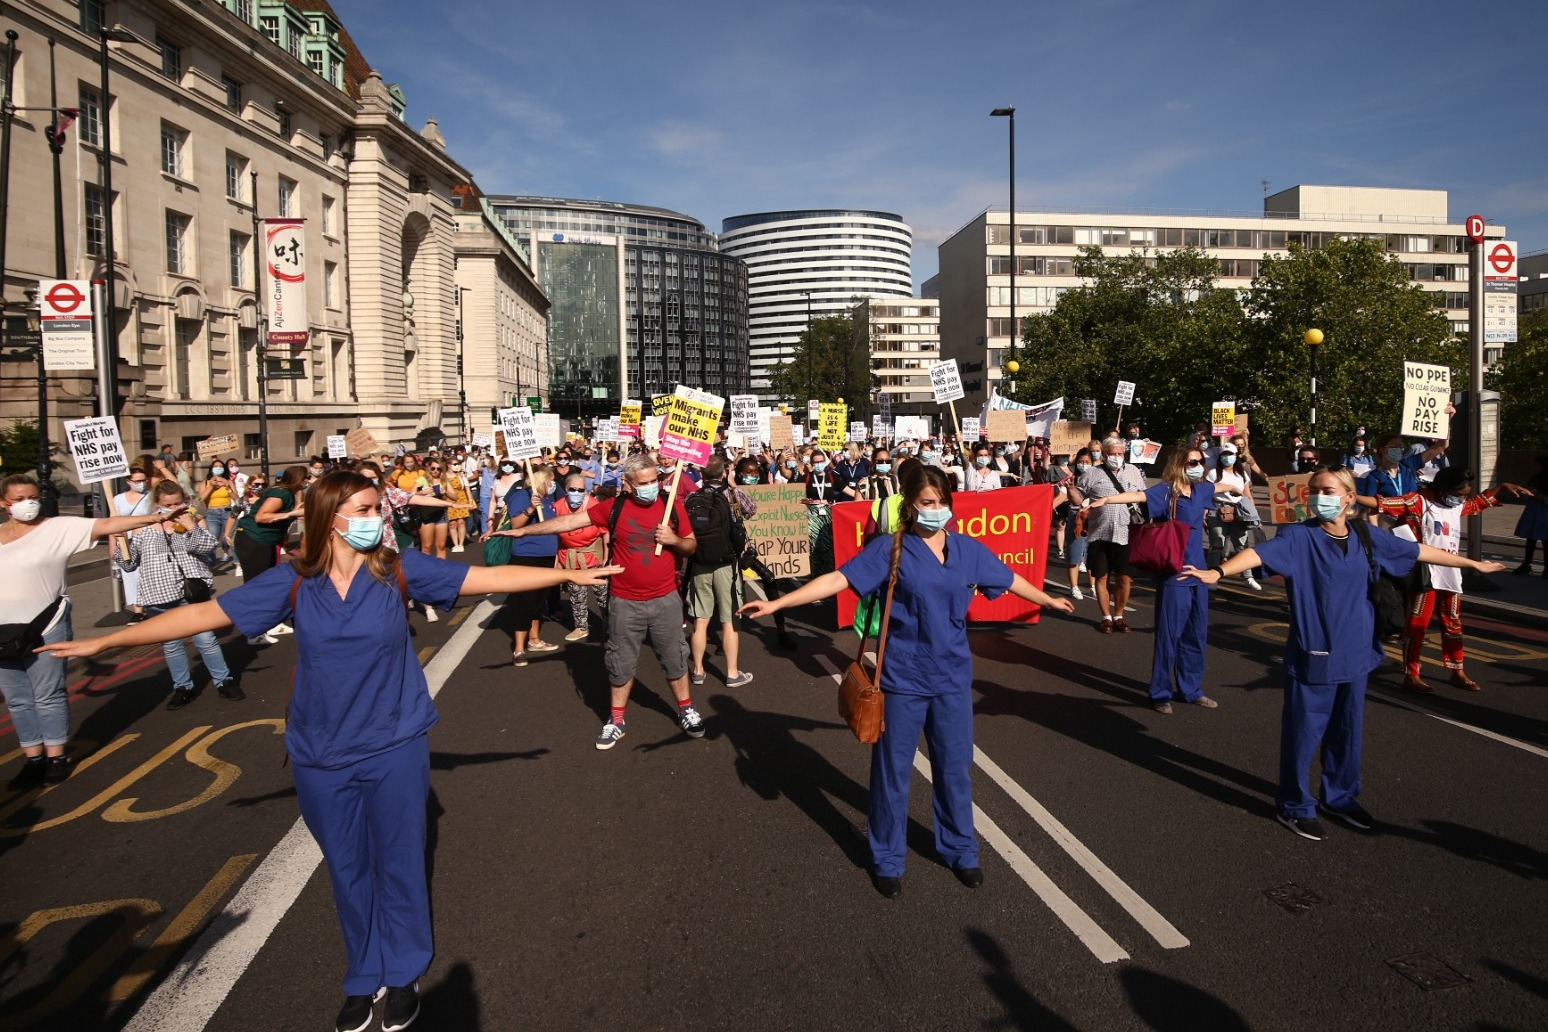 NHS staff prepare to march for higher wages